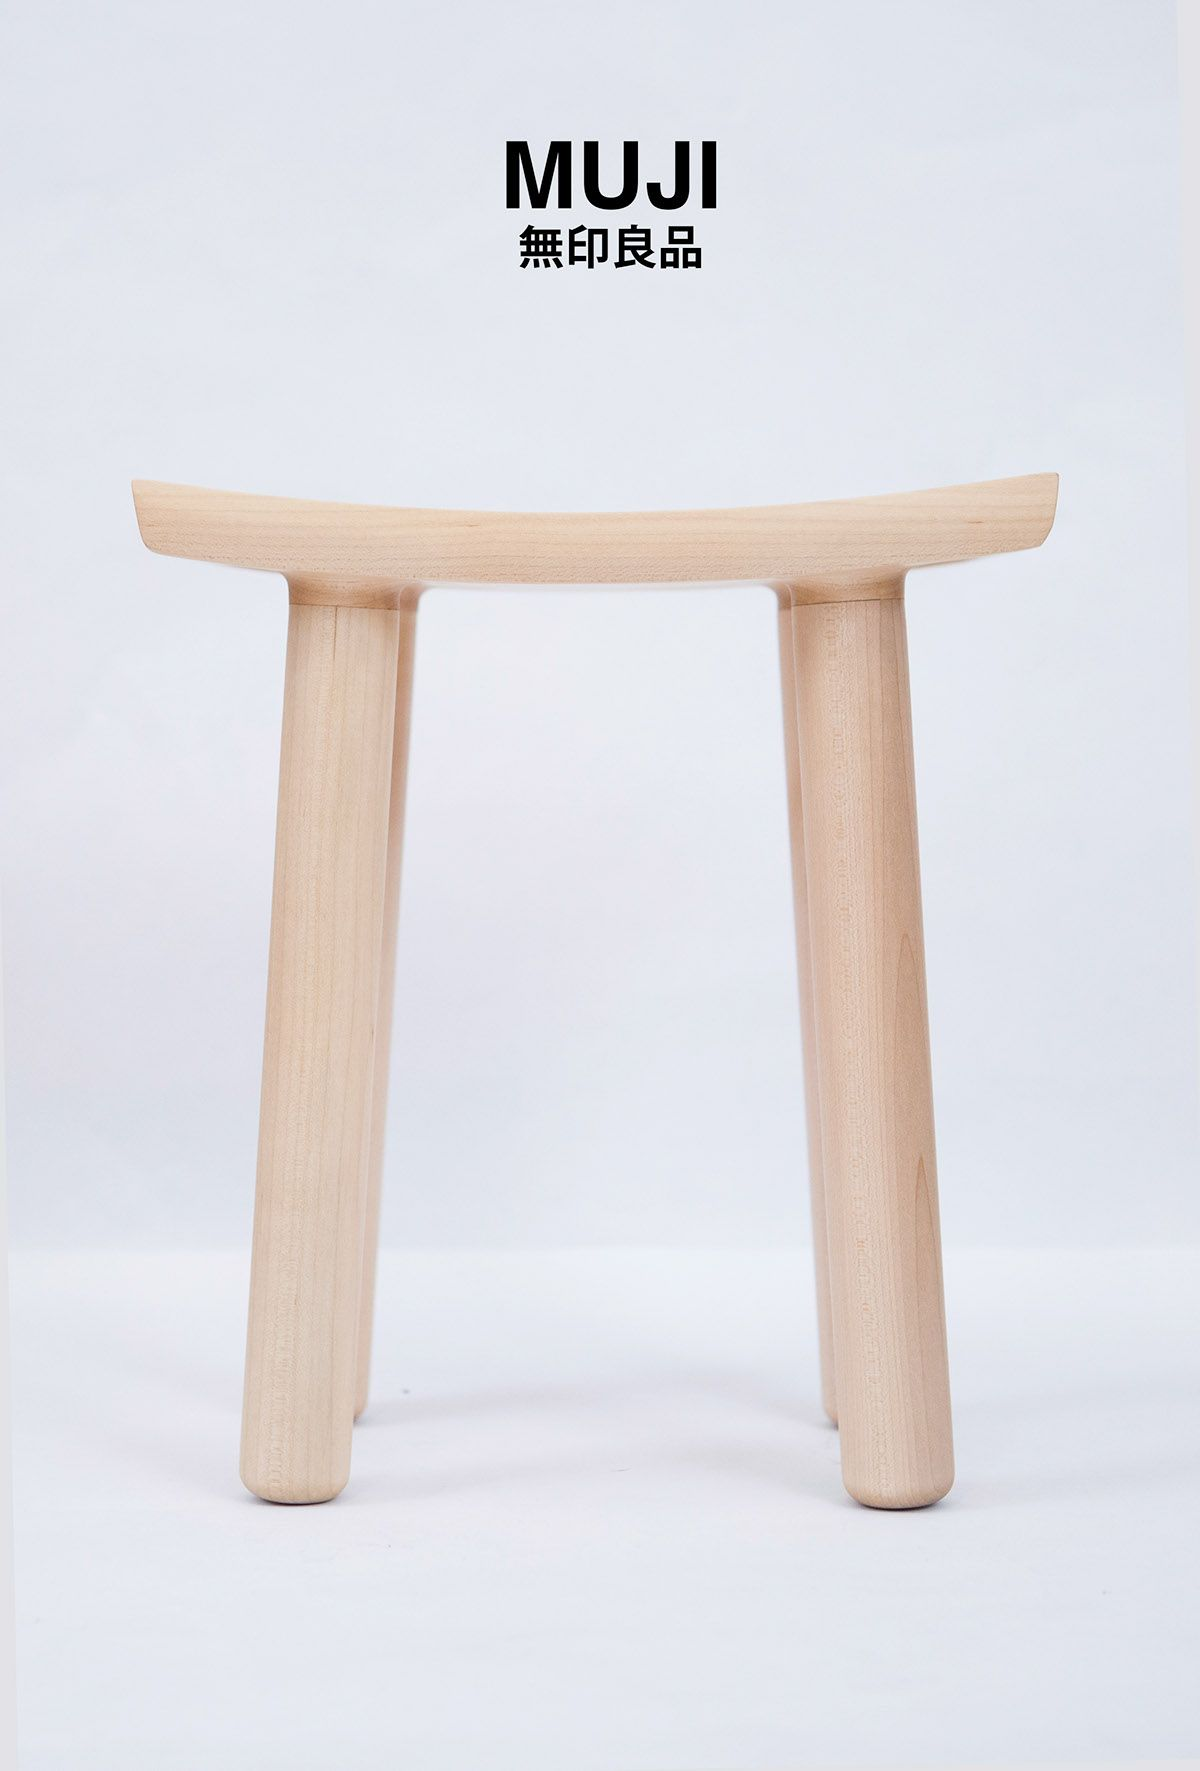 CNC Stool for Muji on Behance